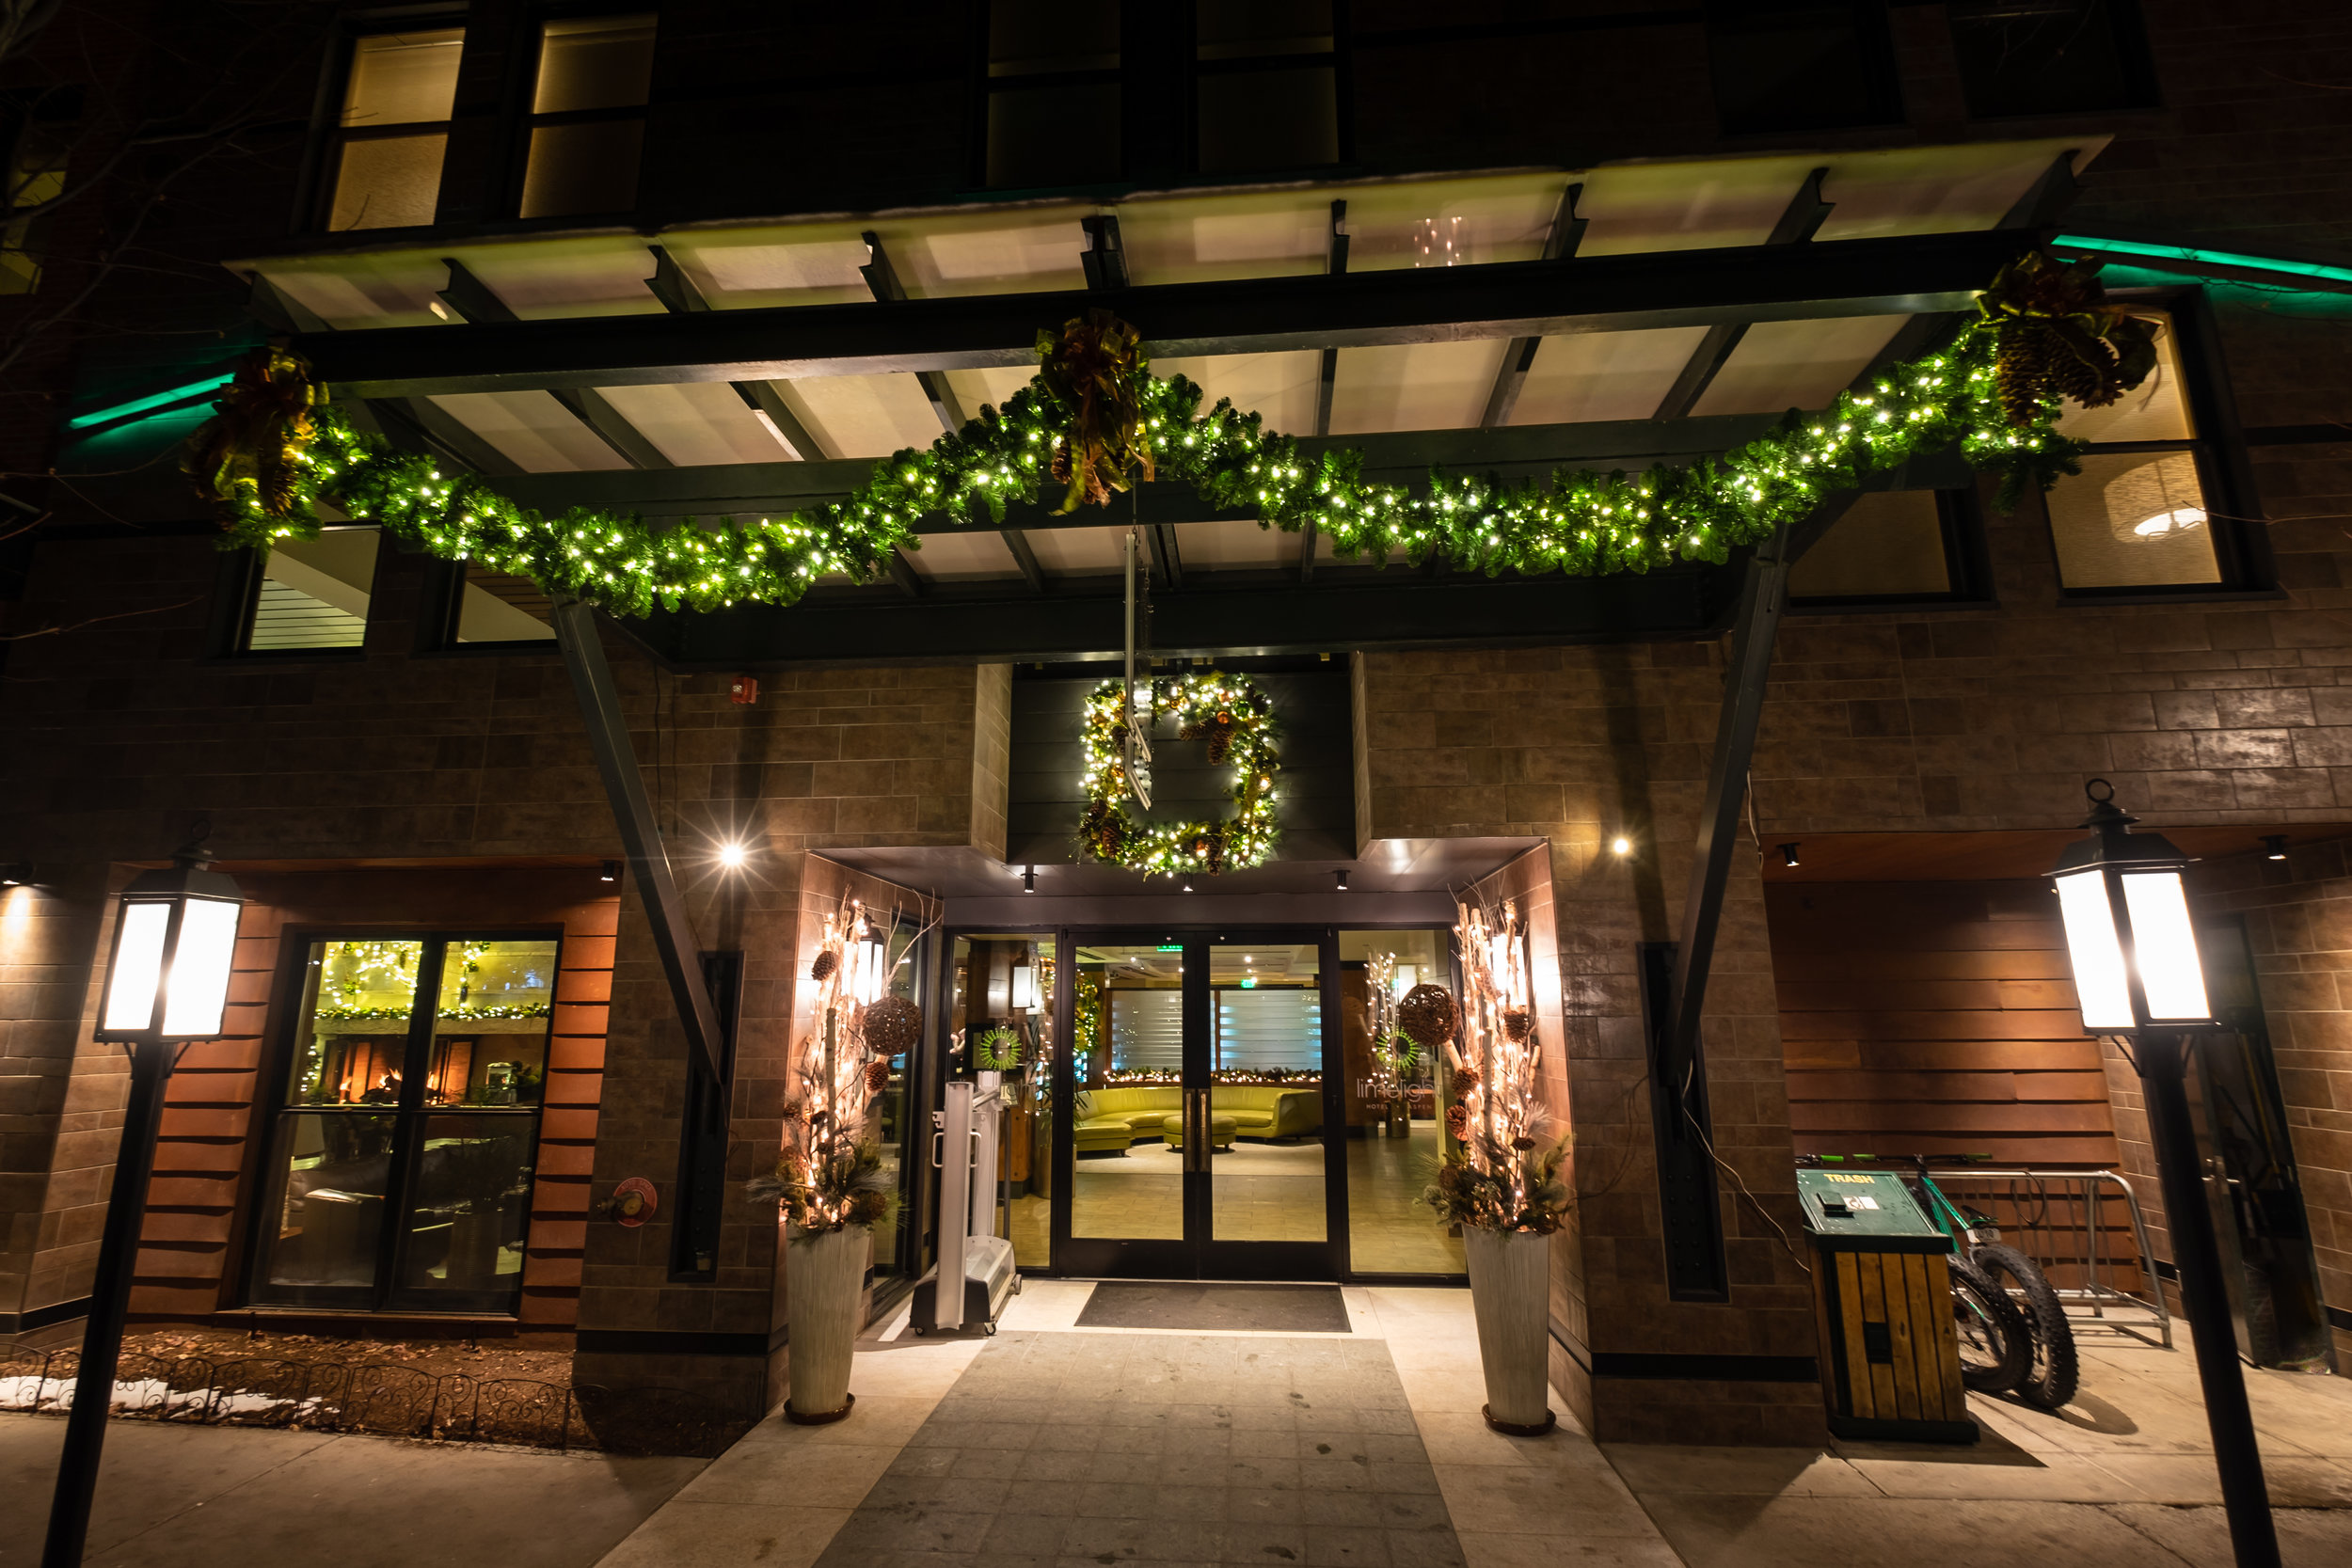 The Limelight Hotel Aspen decorated for Christmas!